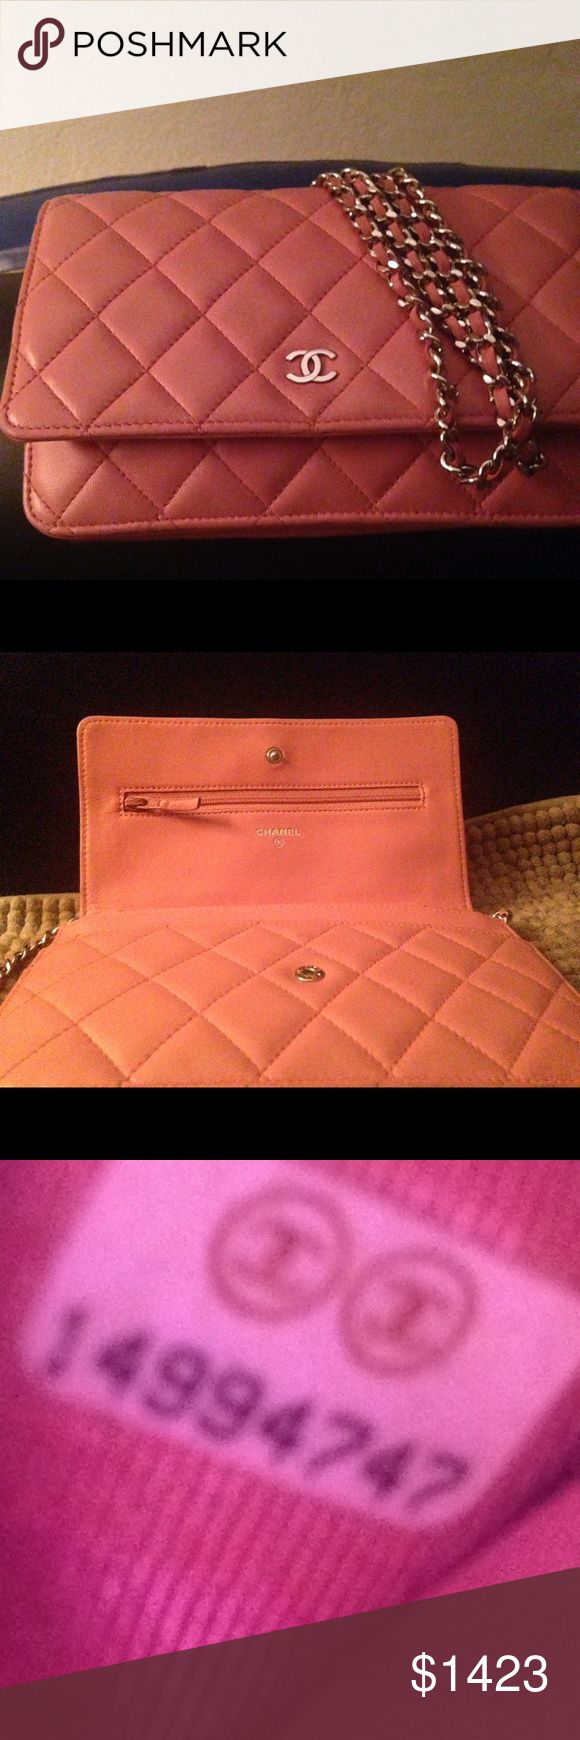 Rare Chanel lamb WOC flap quilted classic mini In great condition inside & out! Rose color mini quilted classic cross-body bag.  100% authentic hologram registration sticker still intact .  Priced for quick sale due to the fact it has a small scuff on back of bag ( included pic) my loss is your gain!  It comes solo couldn't find box due to a recent move.  Please feel free to. Ask any questions Thanks so much for looking!  Misti CHANEL Bags Crossbody Bags